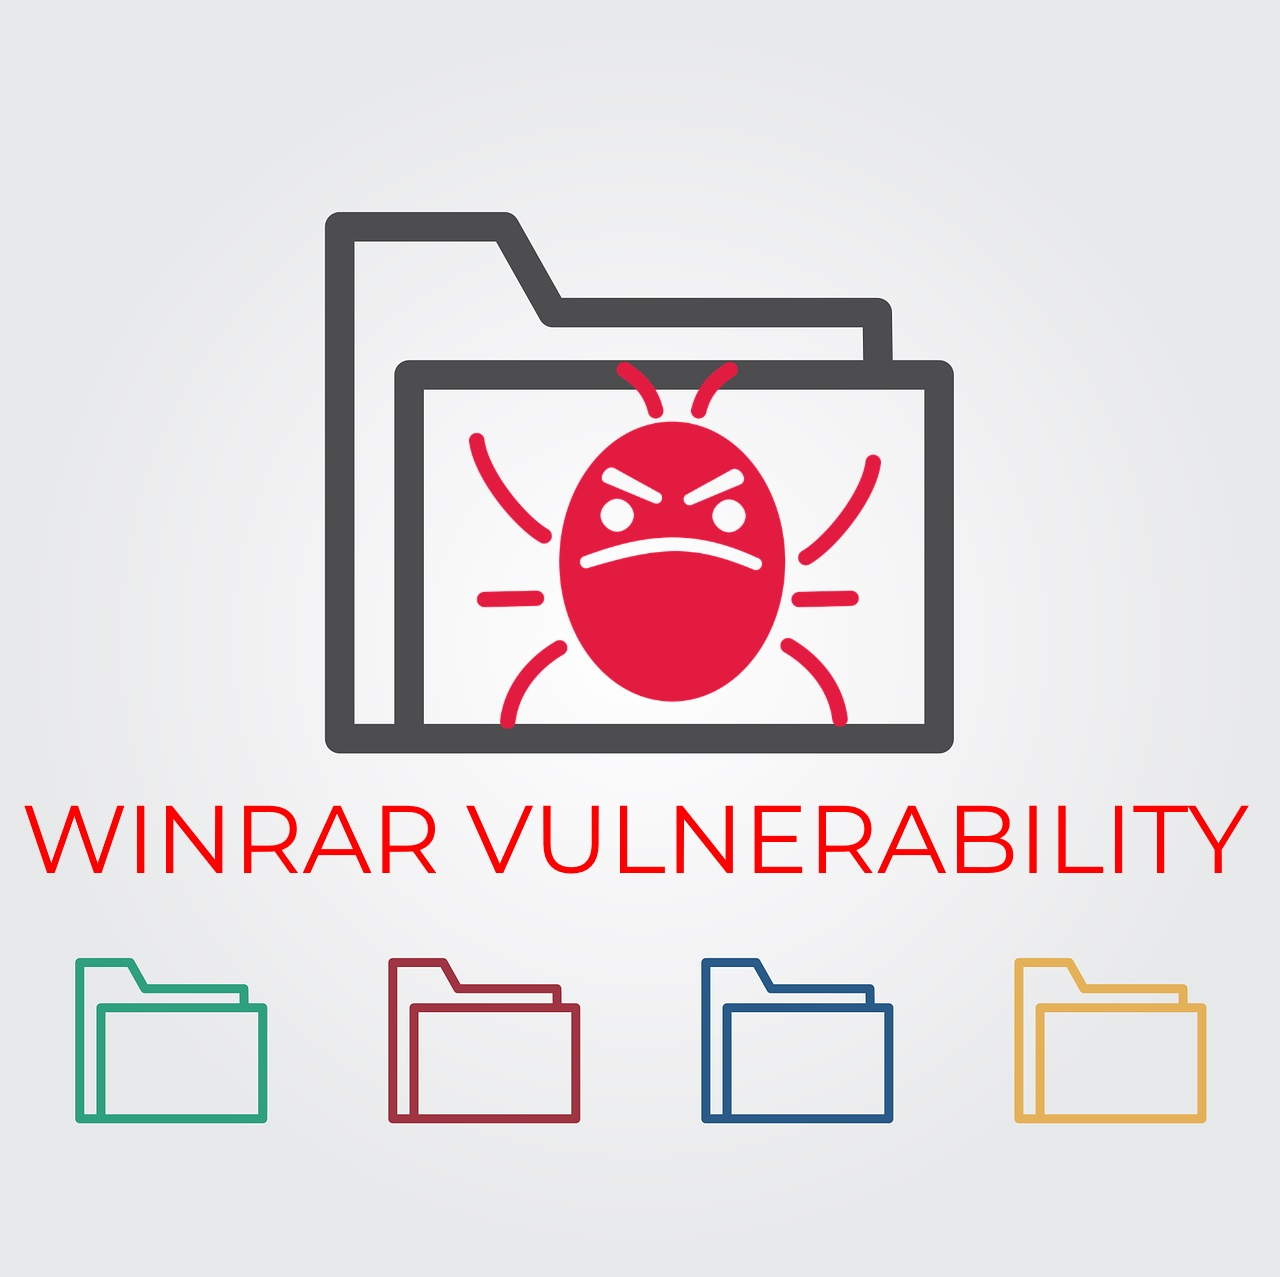 CVE-2018-20250: WinRAR Vulnerability Found after 19 Years of Possible Exploitation